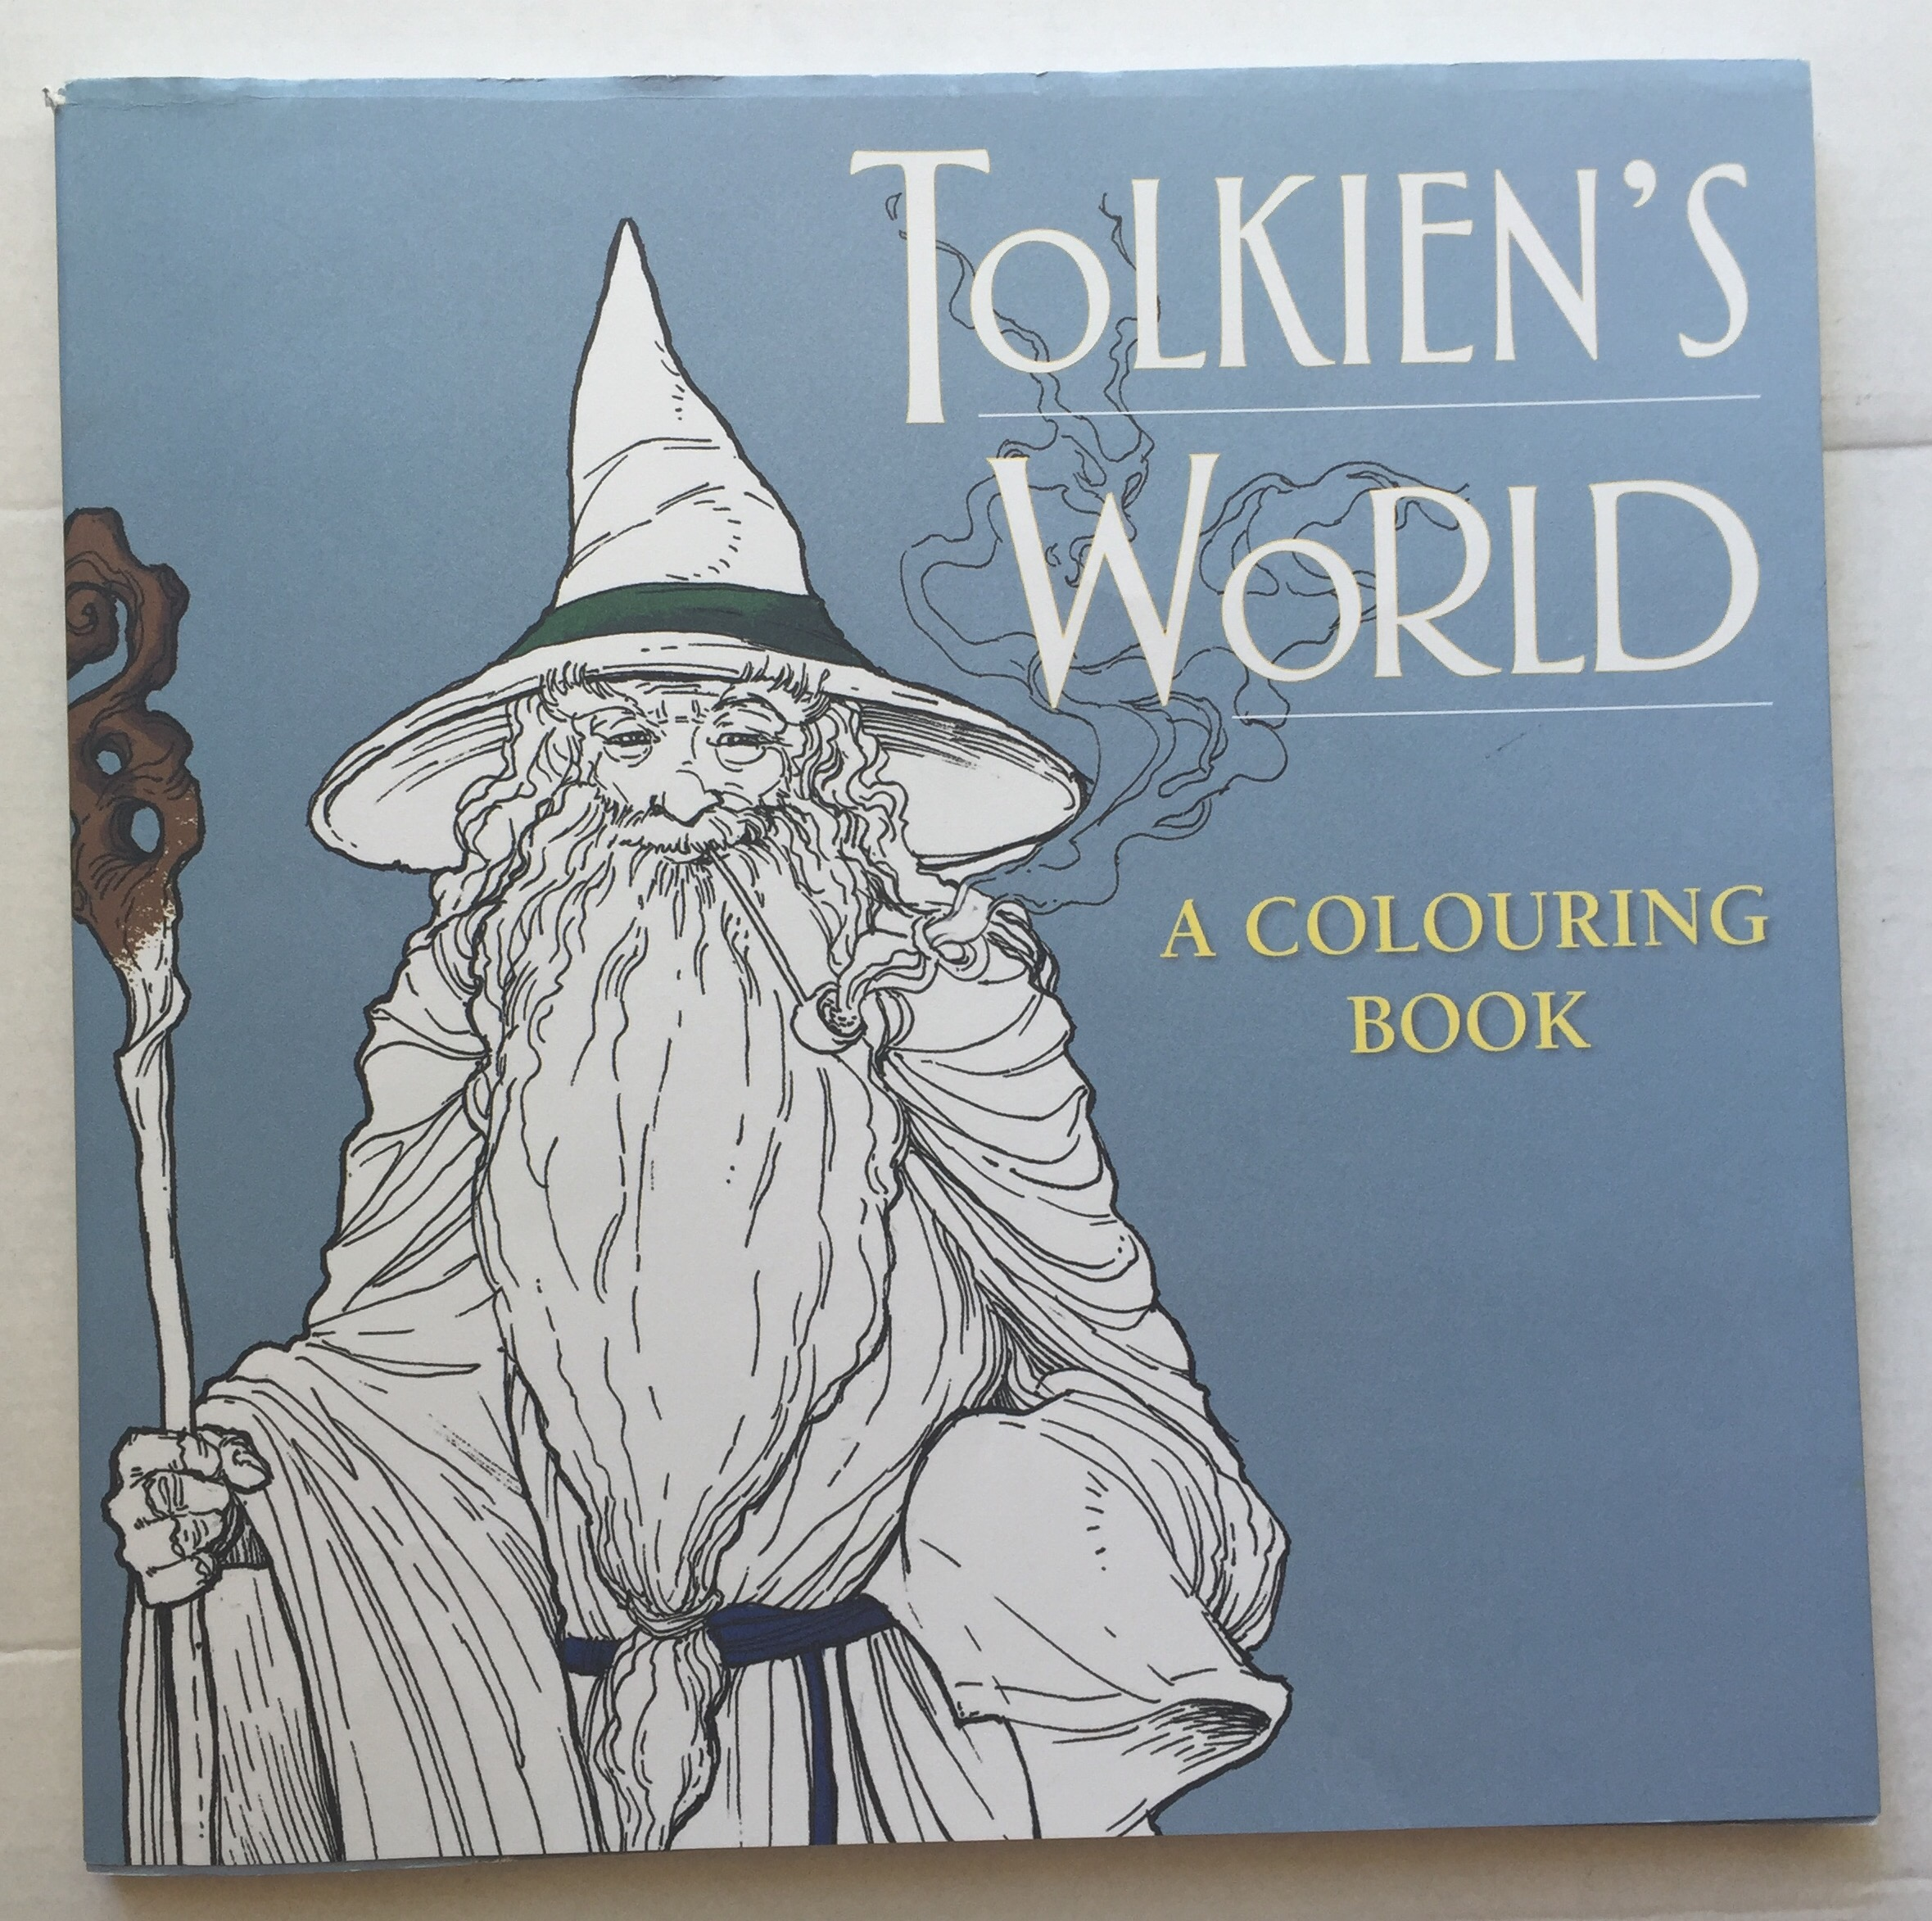 tolkiens world colouring adult coloring stress relief mindfulness fantasy coloring colouring book pencils review books lord of the rings hobbit silmarillion art therapy